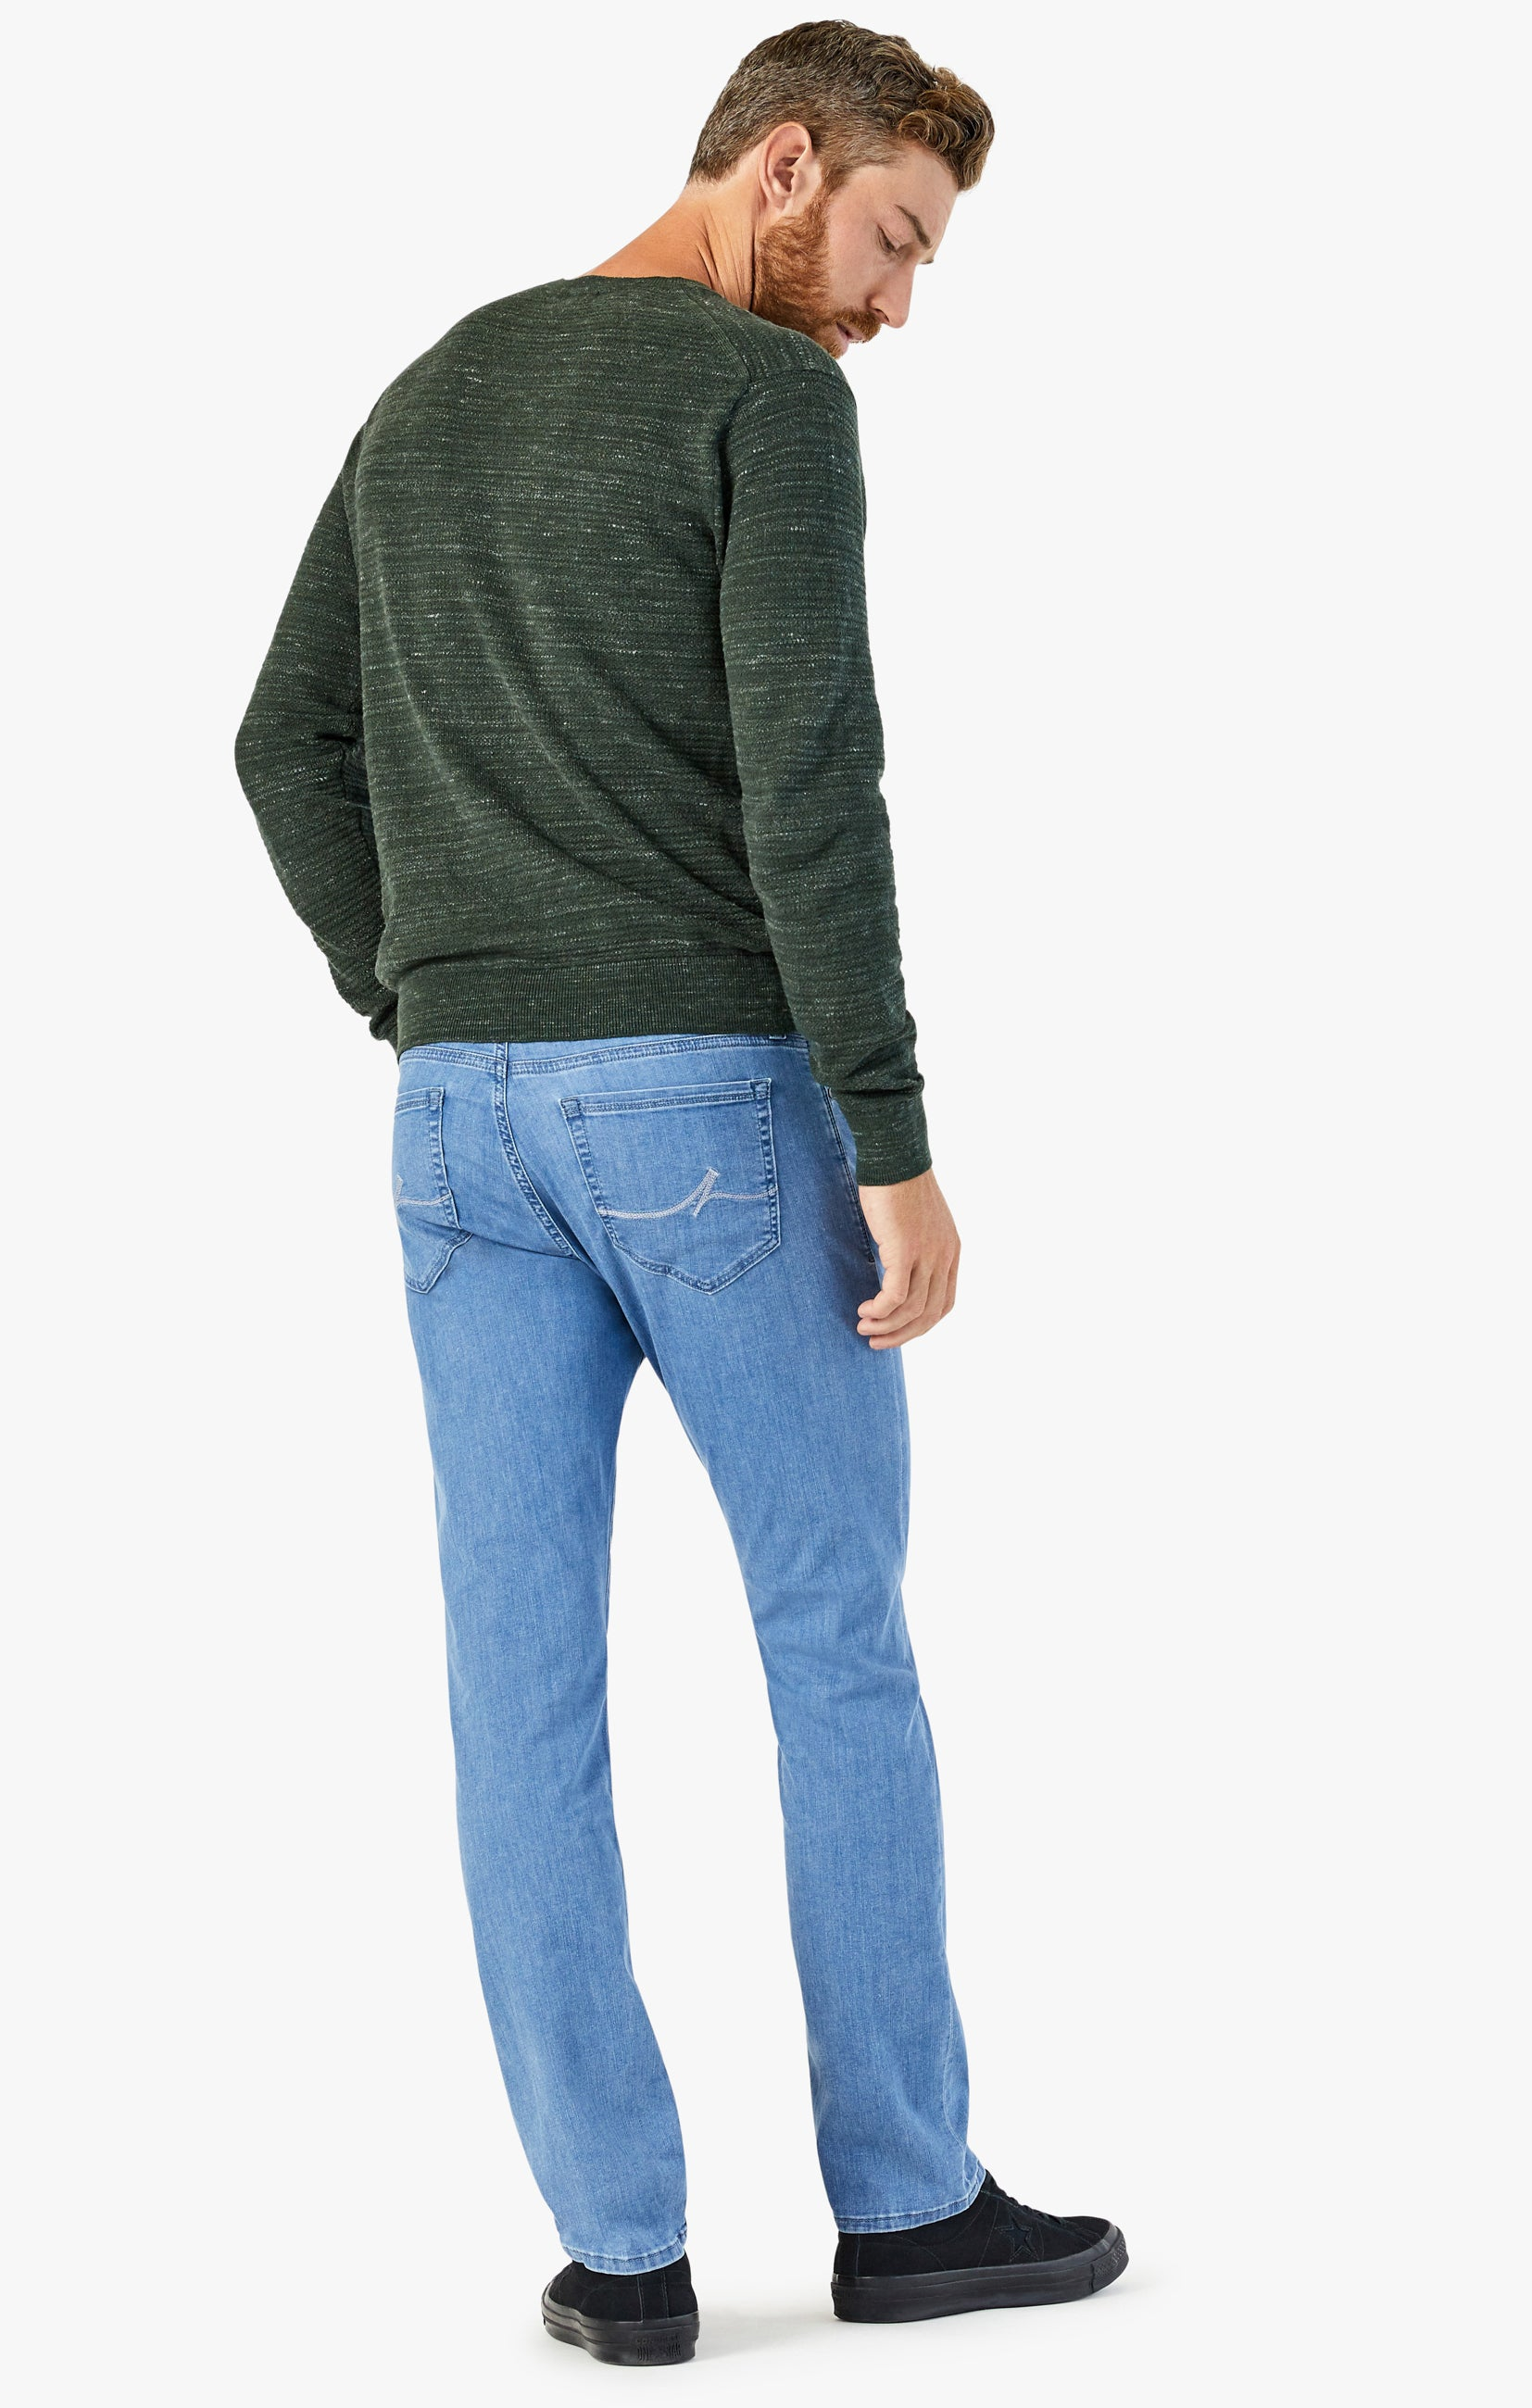 Courage Straight Leg Jeans In Light Kona Image 3